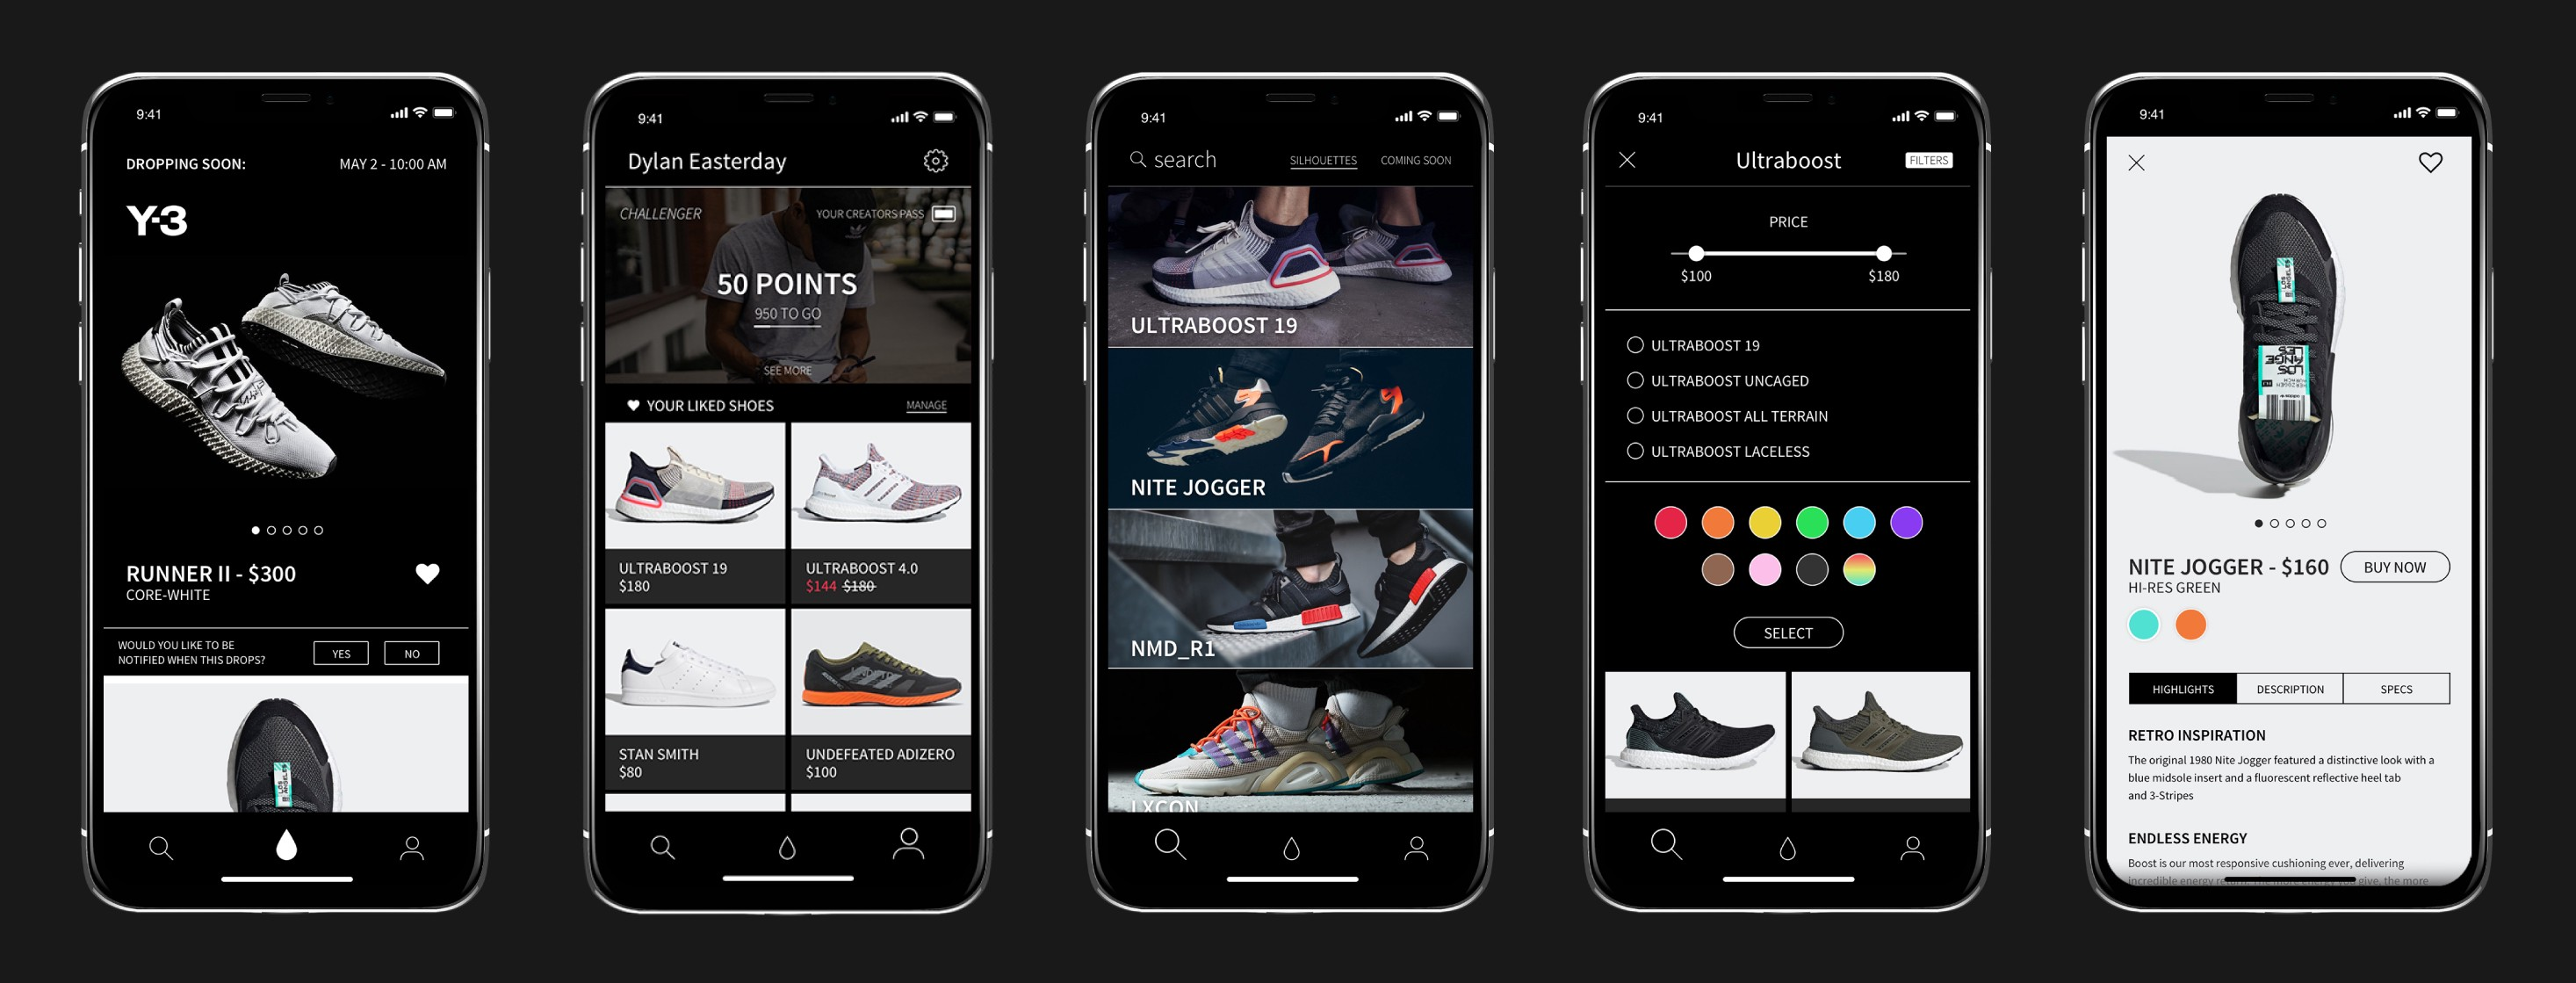 Creating a better sneaker buying experience — Adidas case study